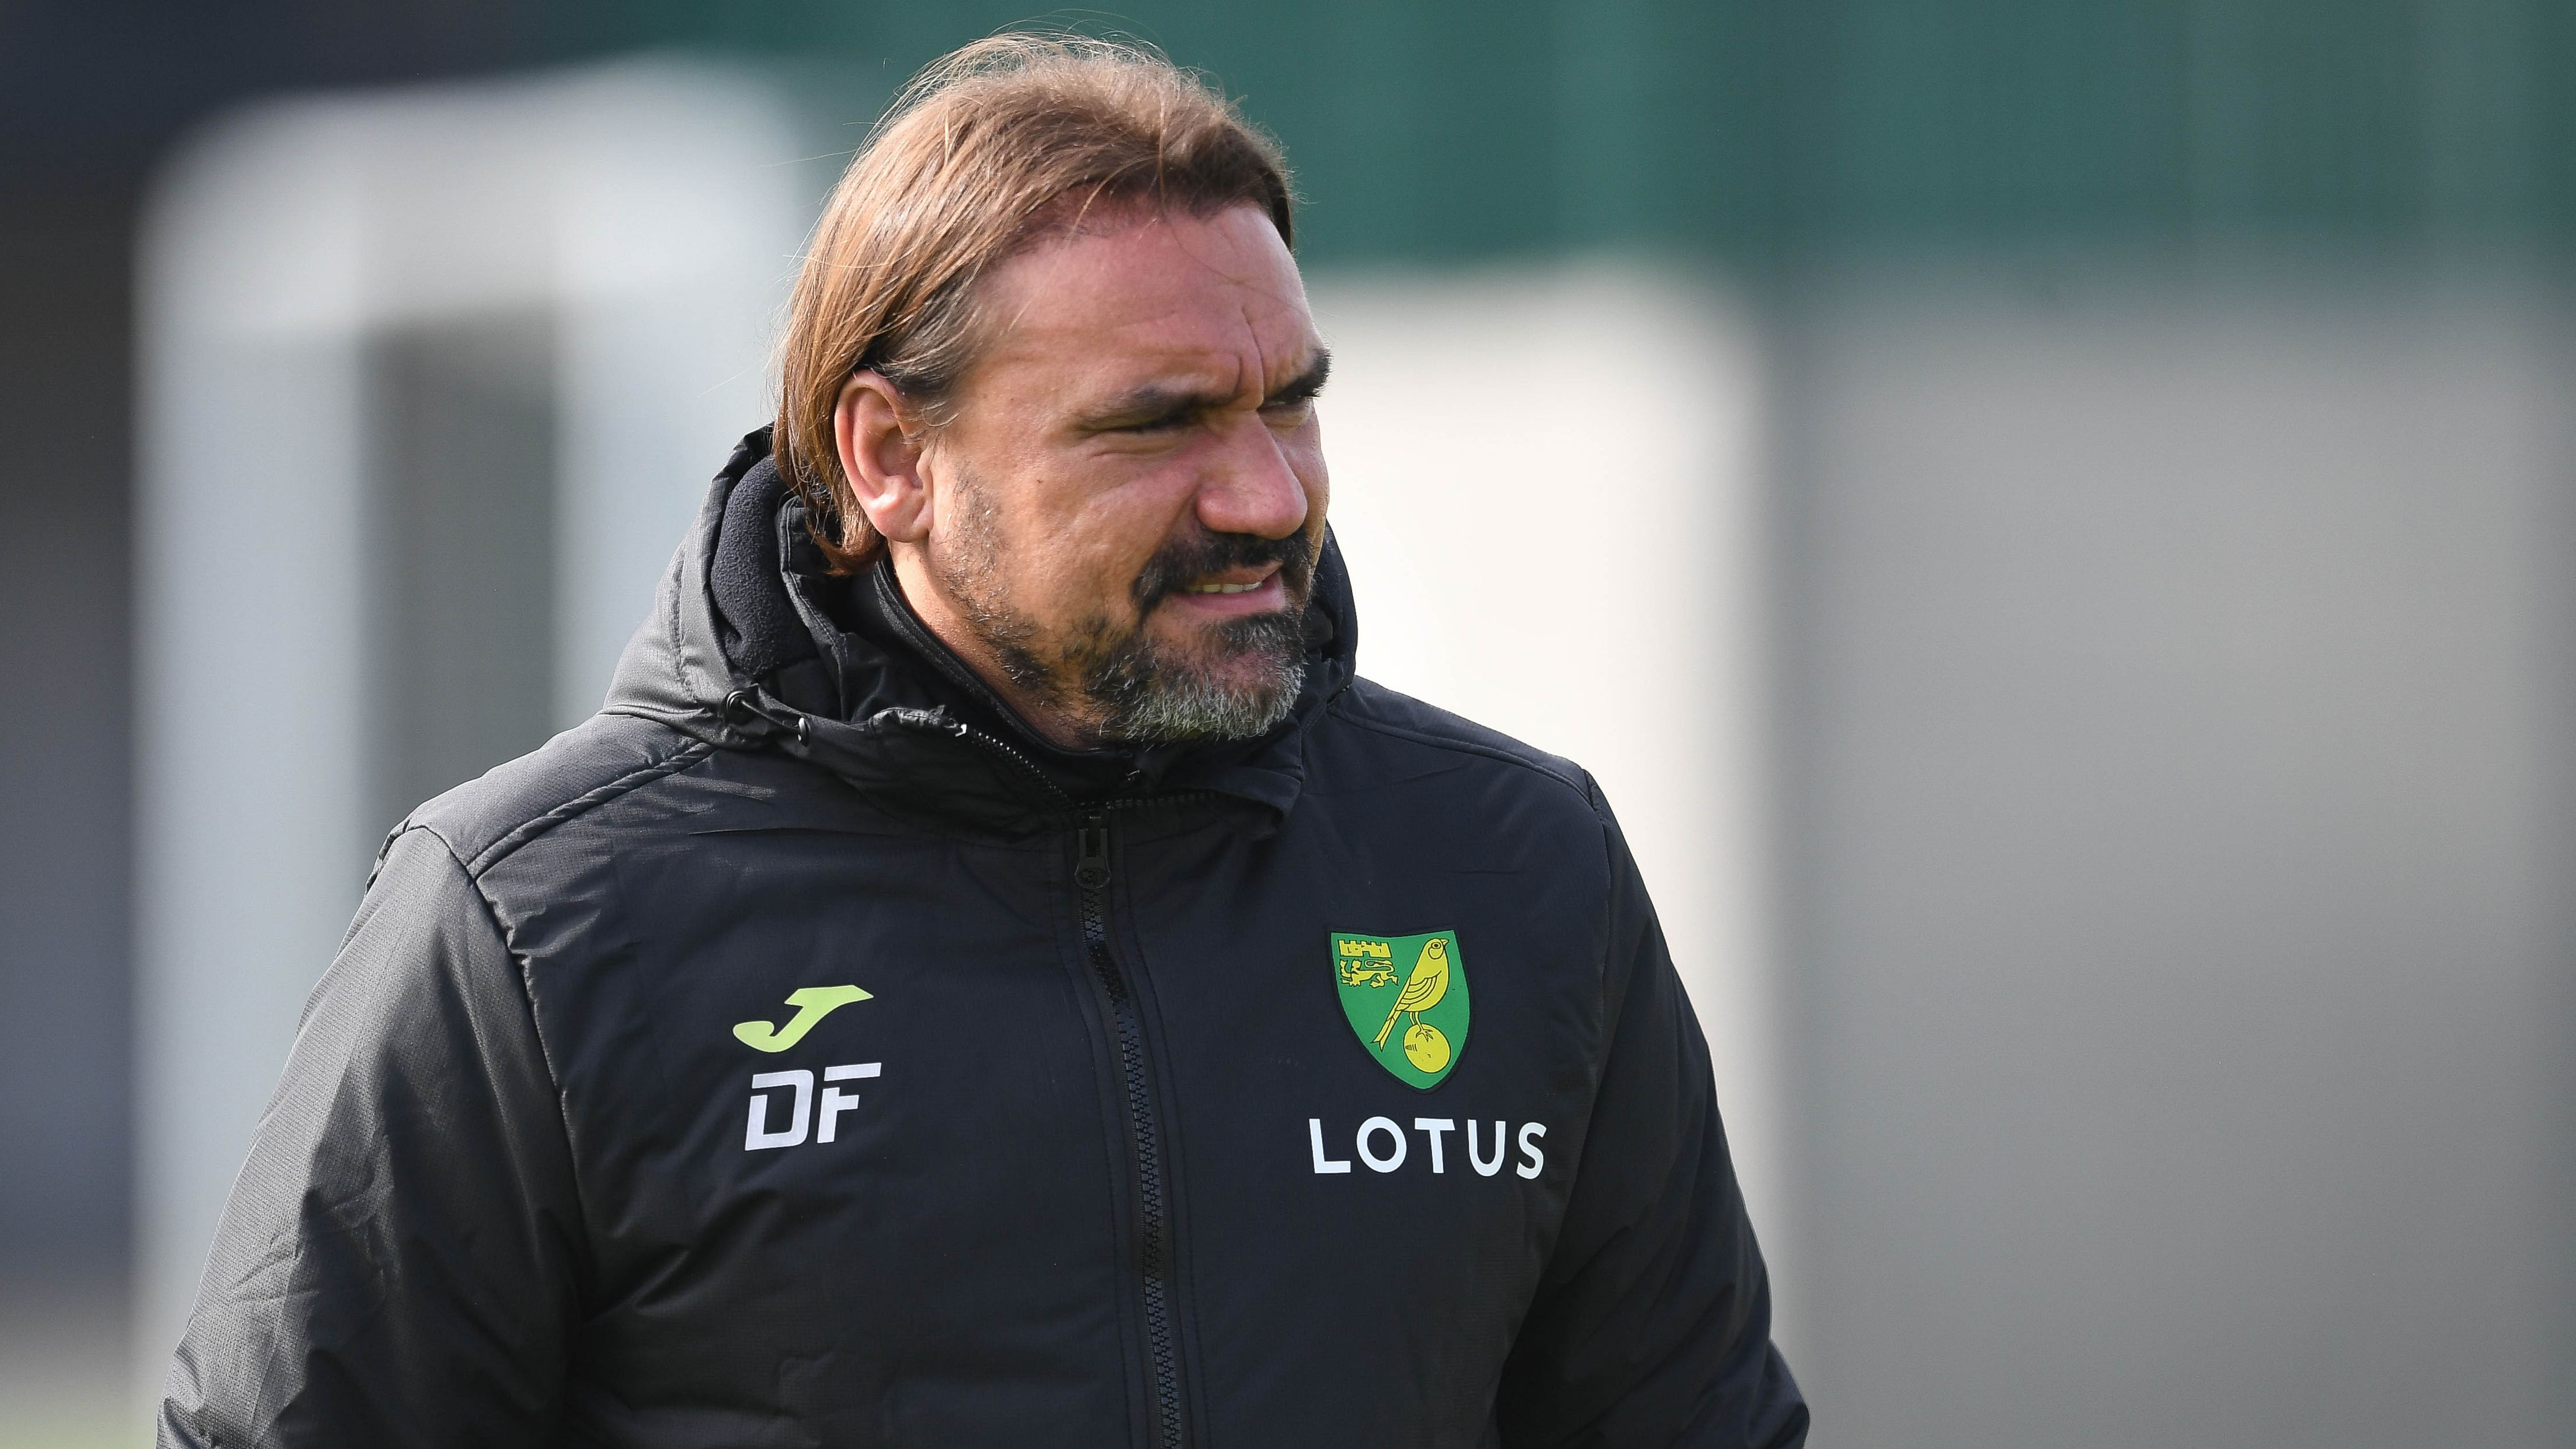 daniel-farke-we-have-conceded-too-many-goals-and-we-have-to-improve-on-this